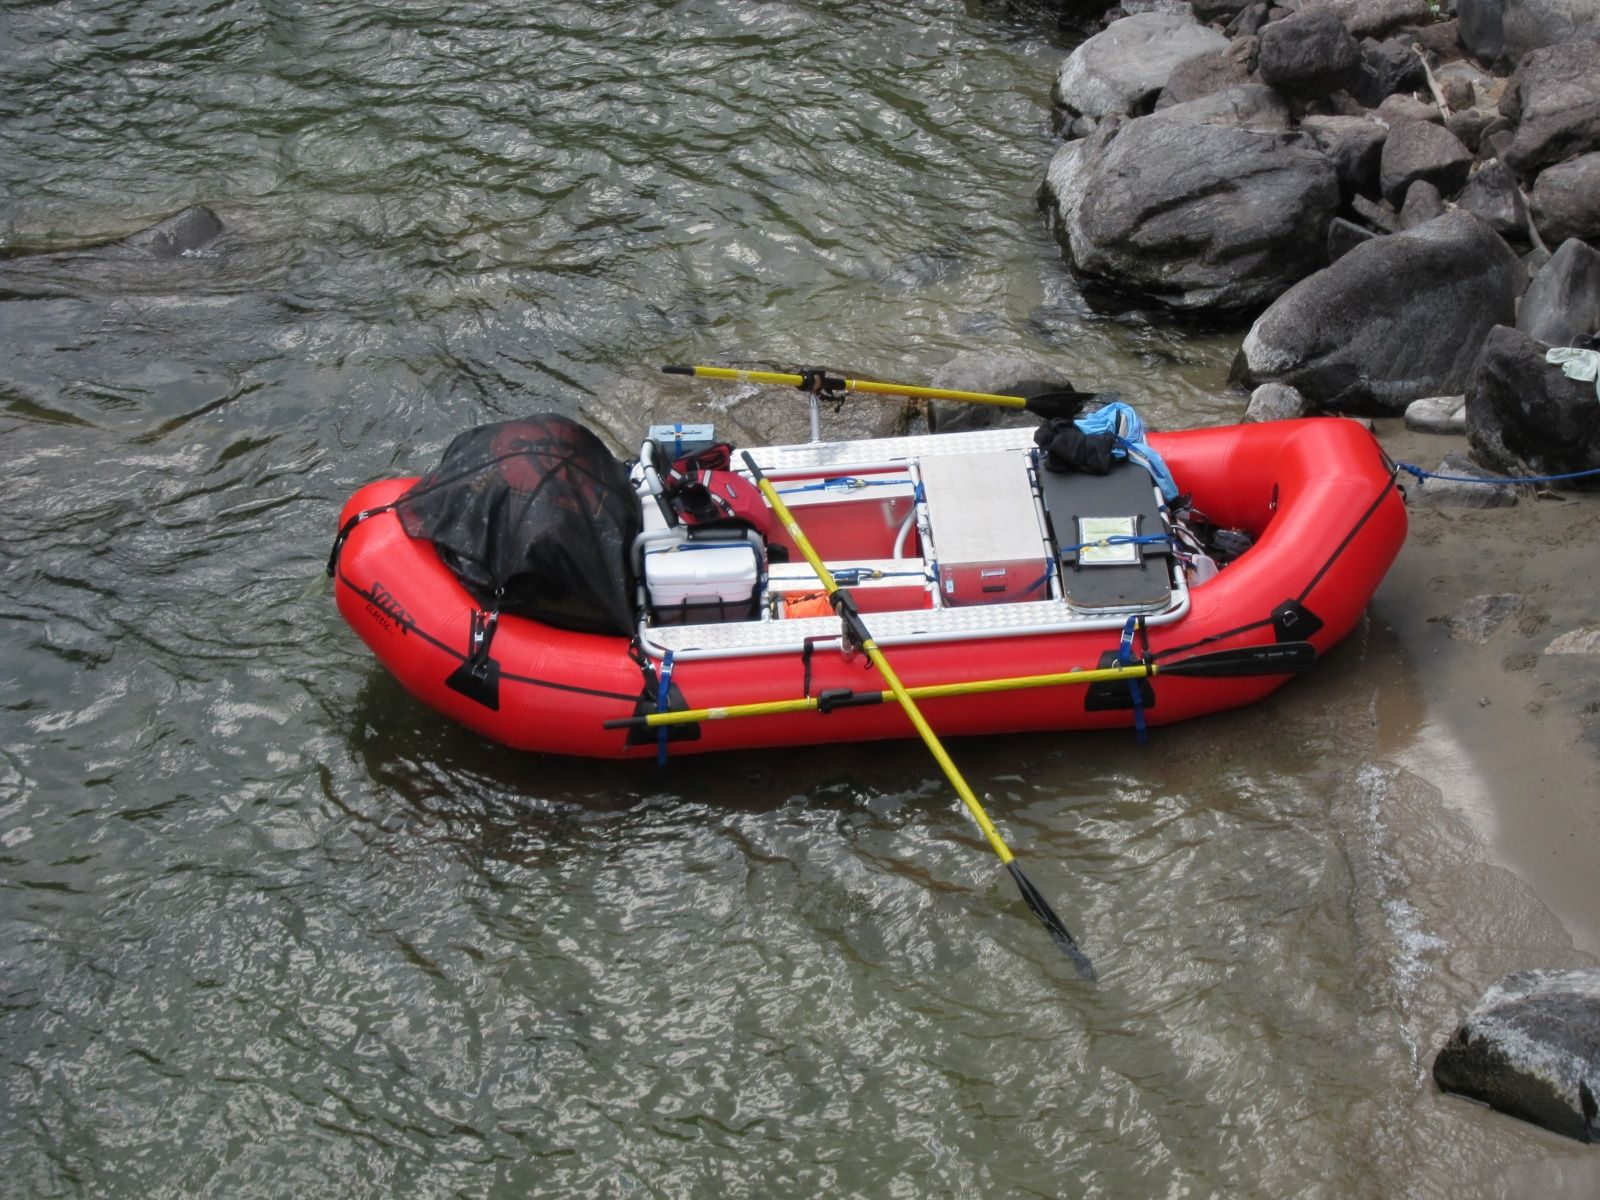 Img 0519 Jpg 1600 X 1200 41 Fly Fishing Boats Whitewater Kayaking Raft Boat